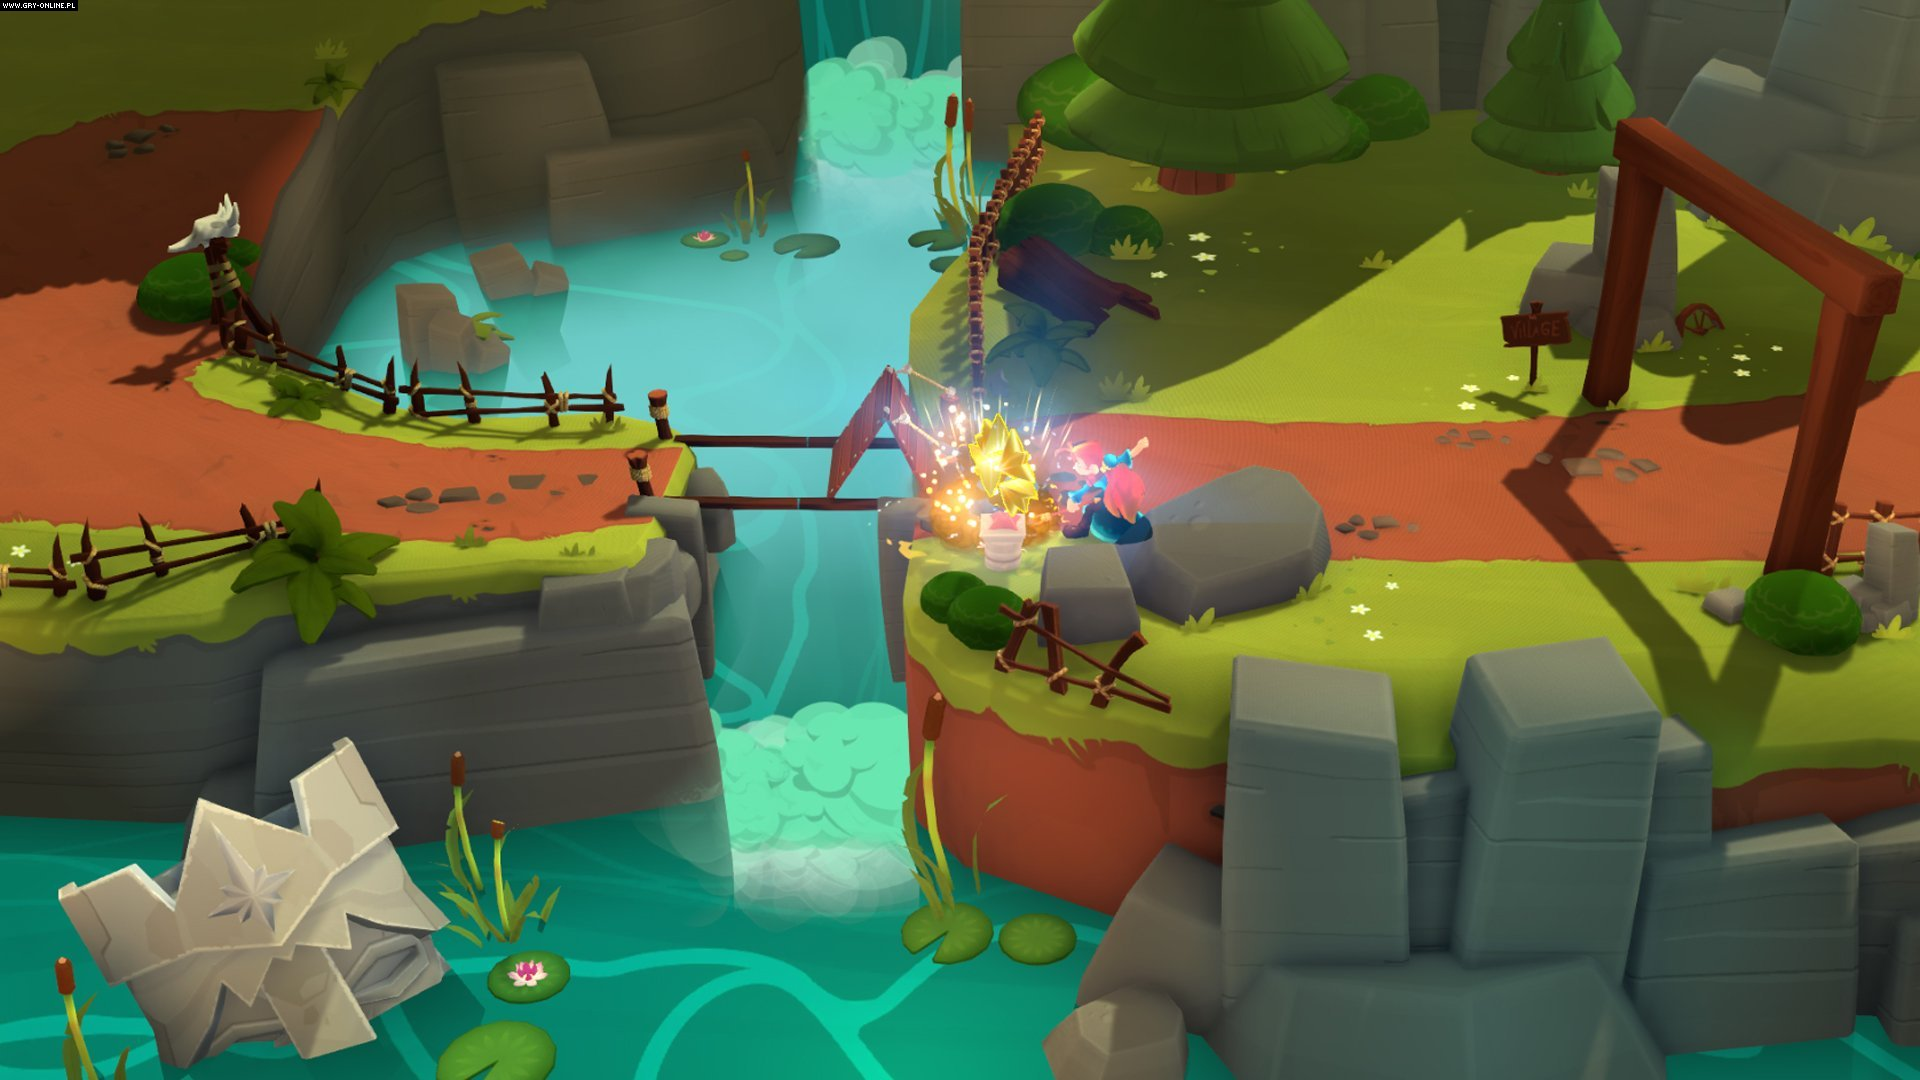 Mages of Mystralia PC Games Image 18/18, Borealys Games